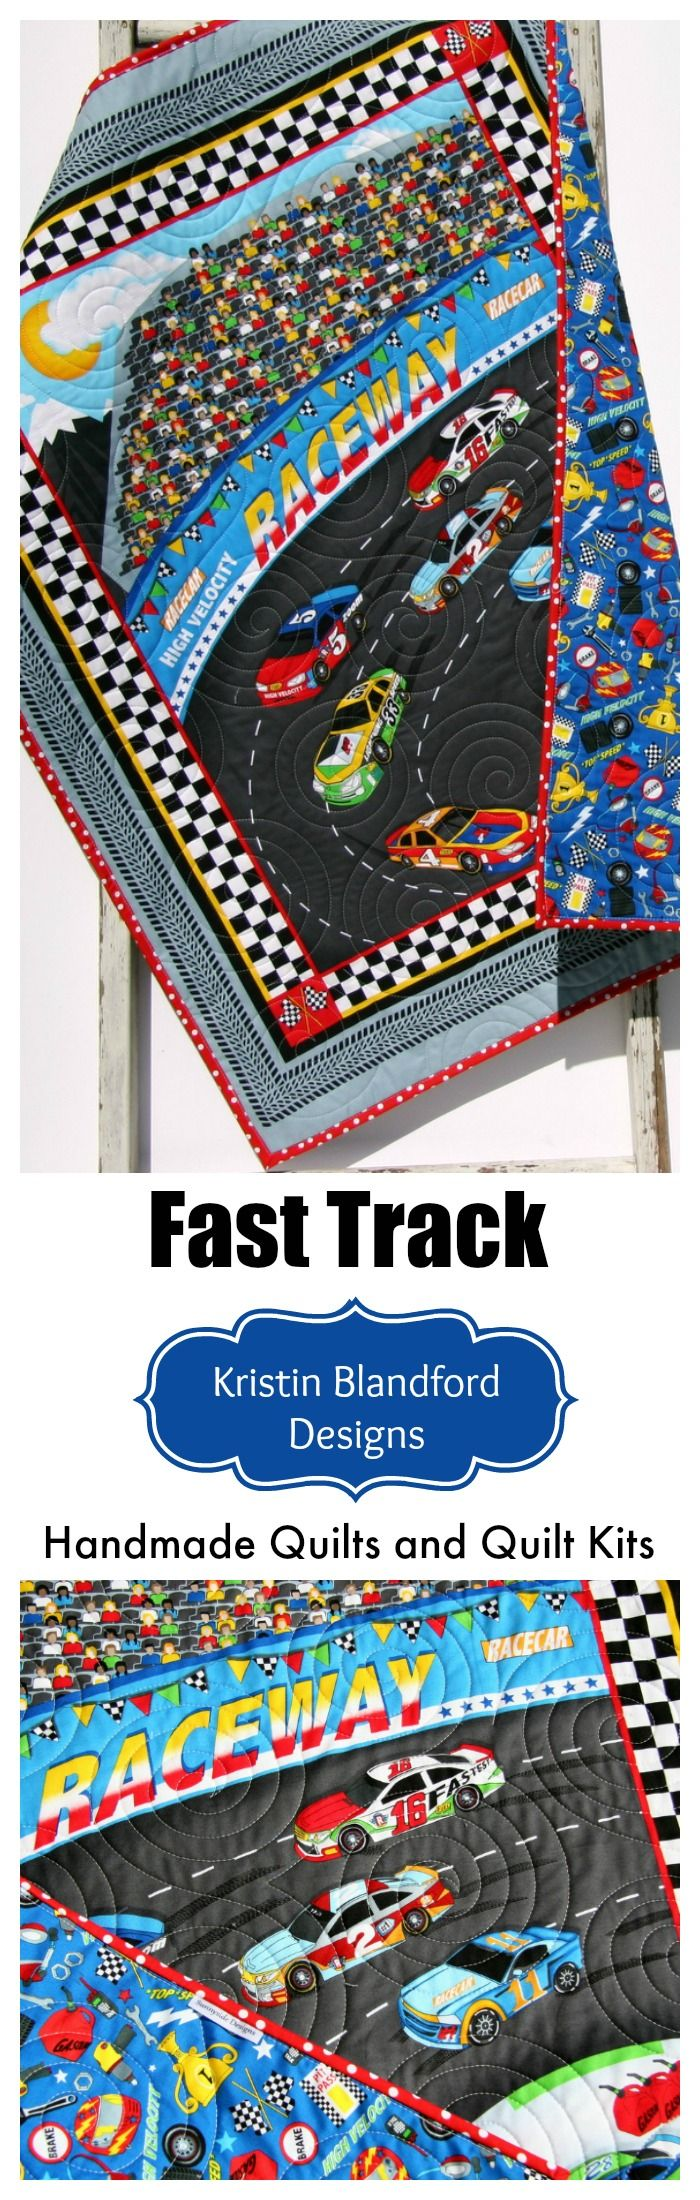 Race Car Handmade Quilt, Baby Quilt Kit, Baby Quilt for Sale, Raceway Race Track Baby Crib Bedding, Baby Quilts to Make, Baby Shower Gift Ideas, Fast Track Panel Quilt Kit, Simple Sewing Quilting Project DIY Craft Idea by Kristin Blandford Designs #handmadequilts #babyshowergift #racecars